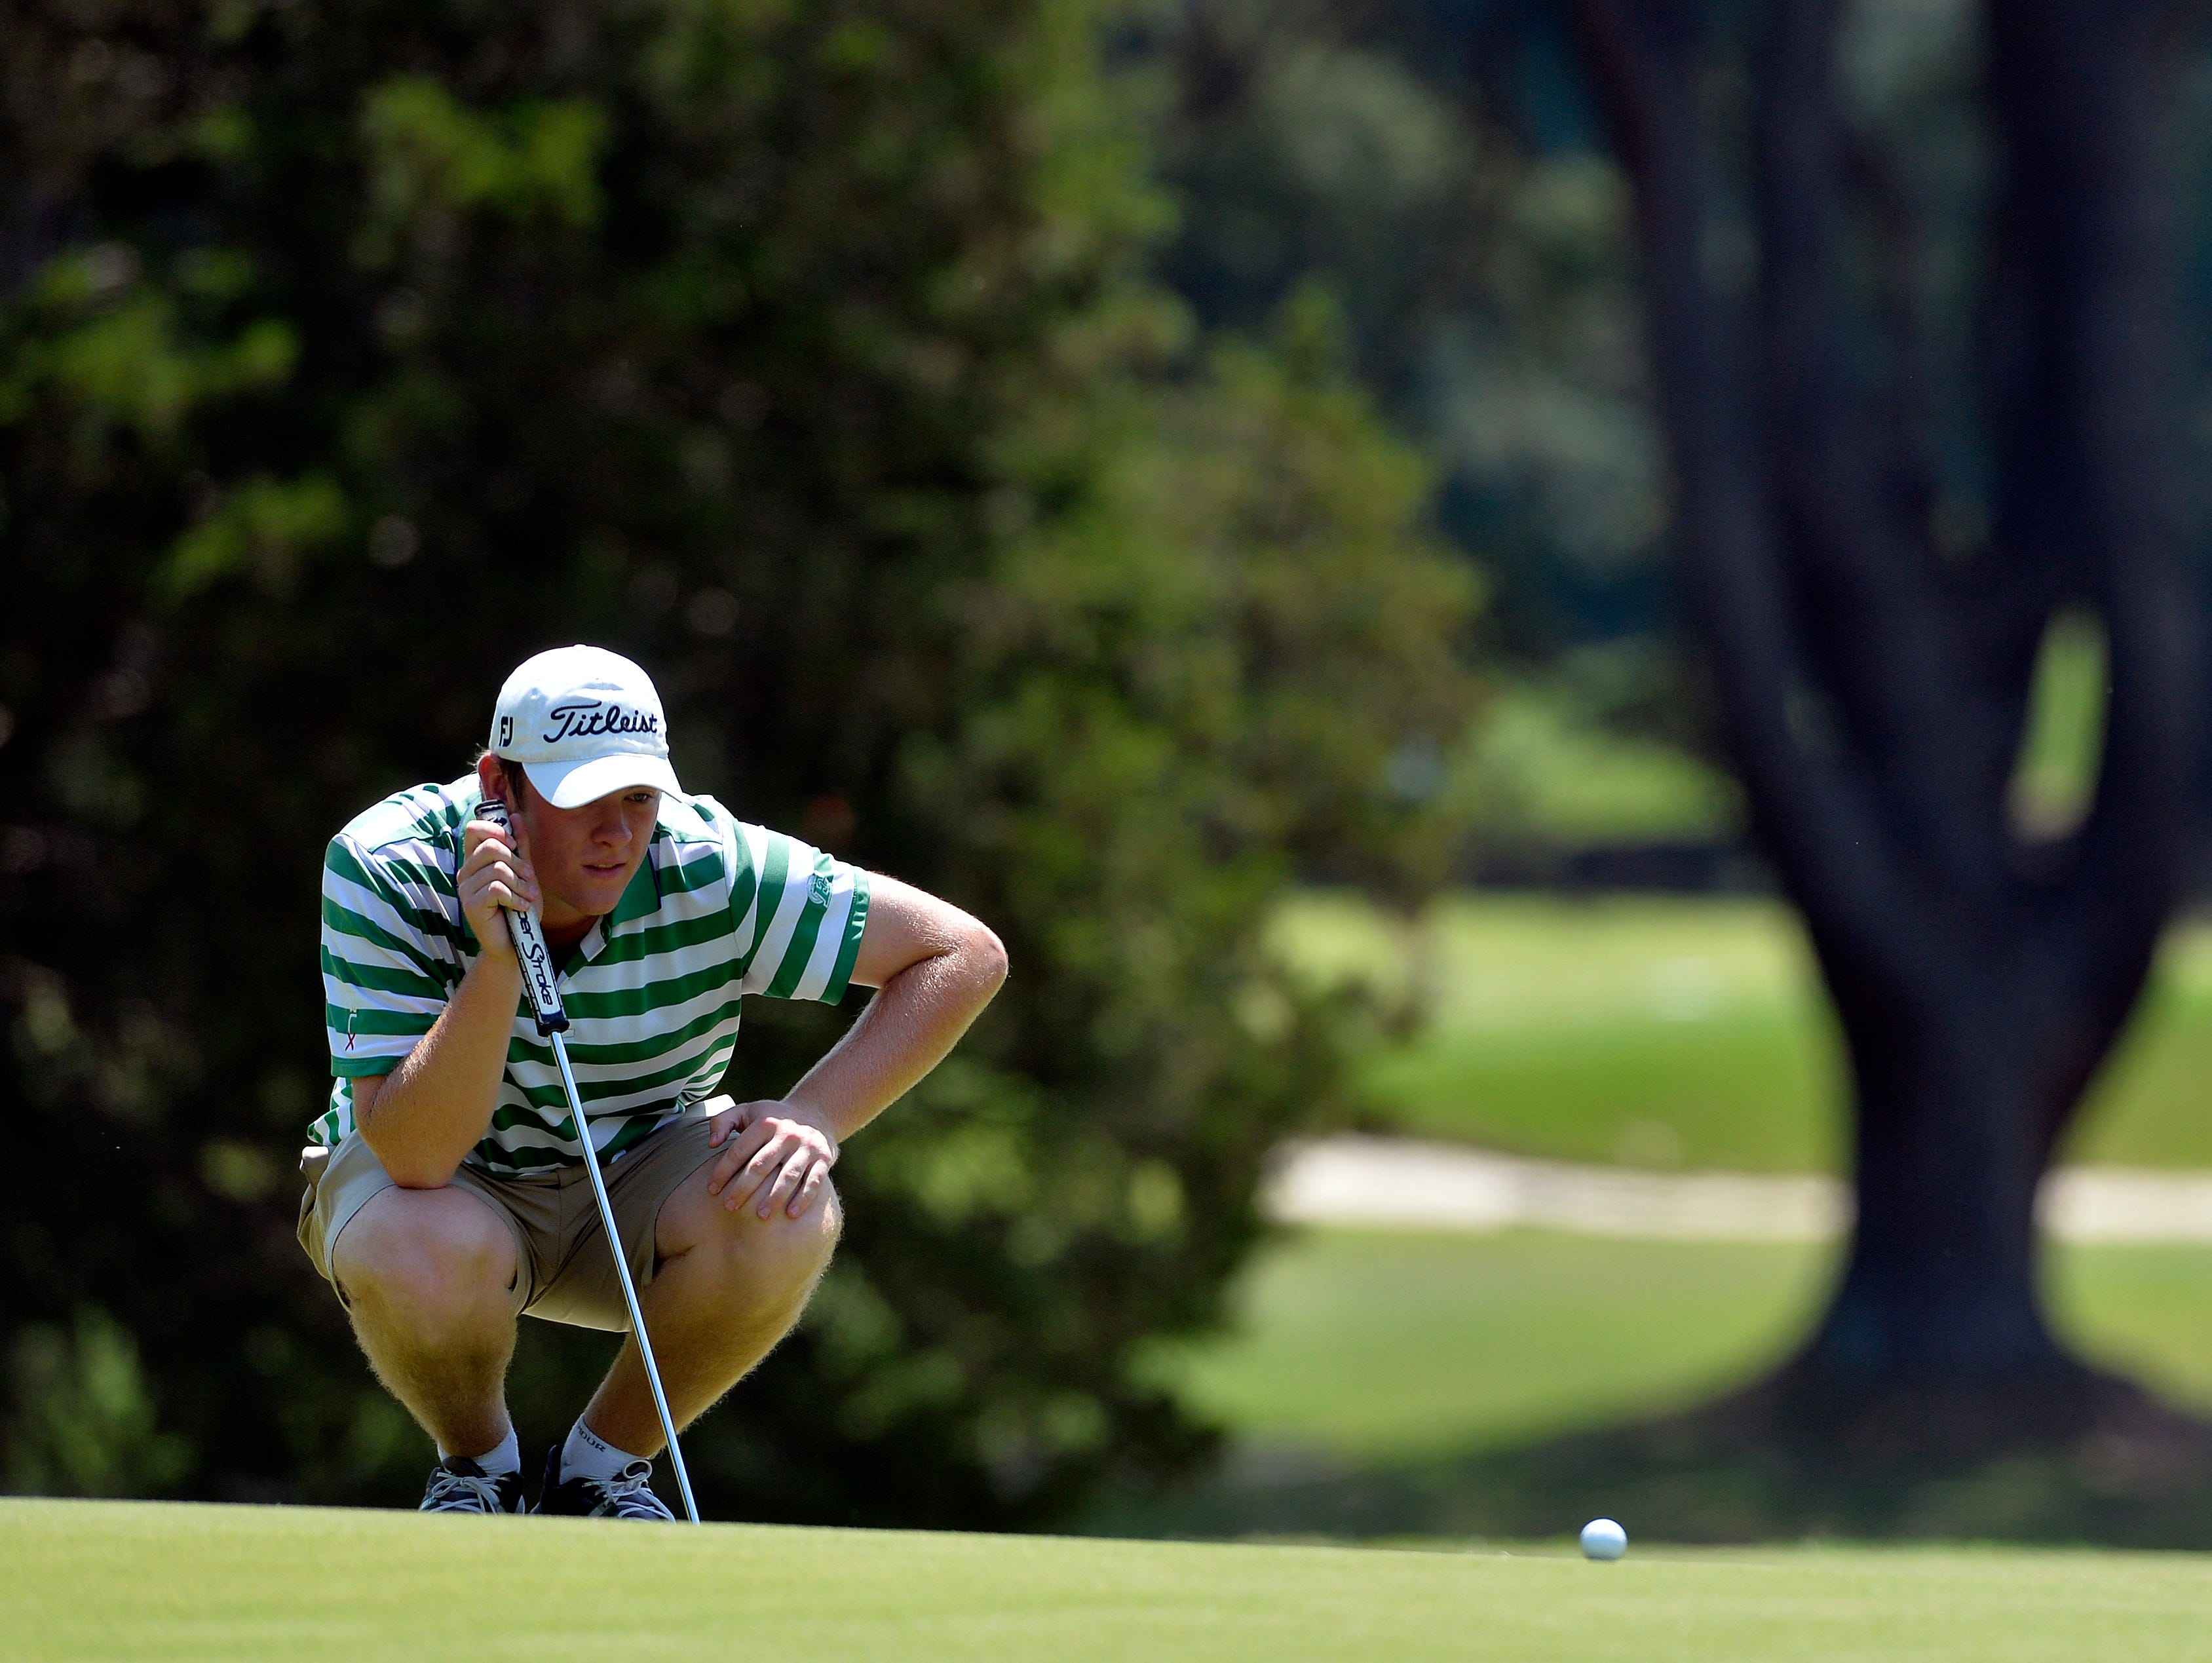 Easley's Matt Carter eyes a putt on the 13th green Monday during the first round of the 77th Kiwanis South Carolina AAAA Golf Tournament at Furman University Golf Course. Carter shot 71 and is two back of the leaders.